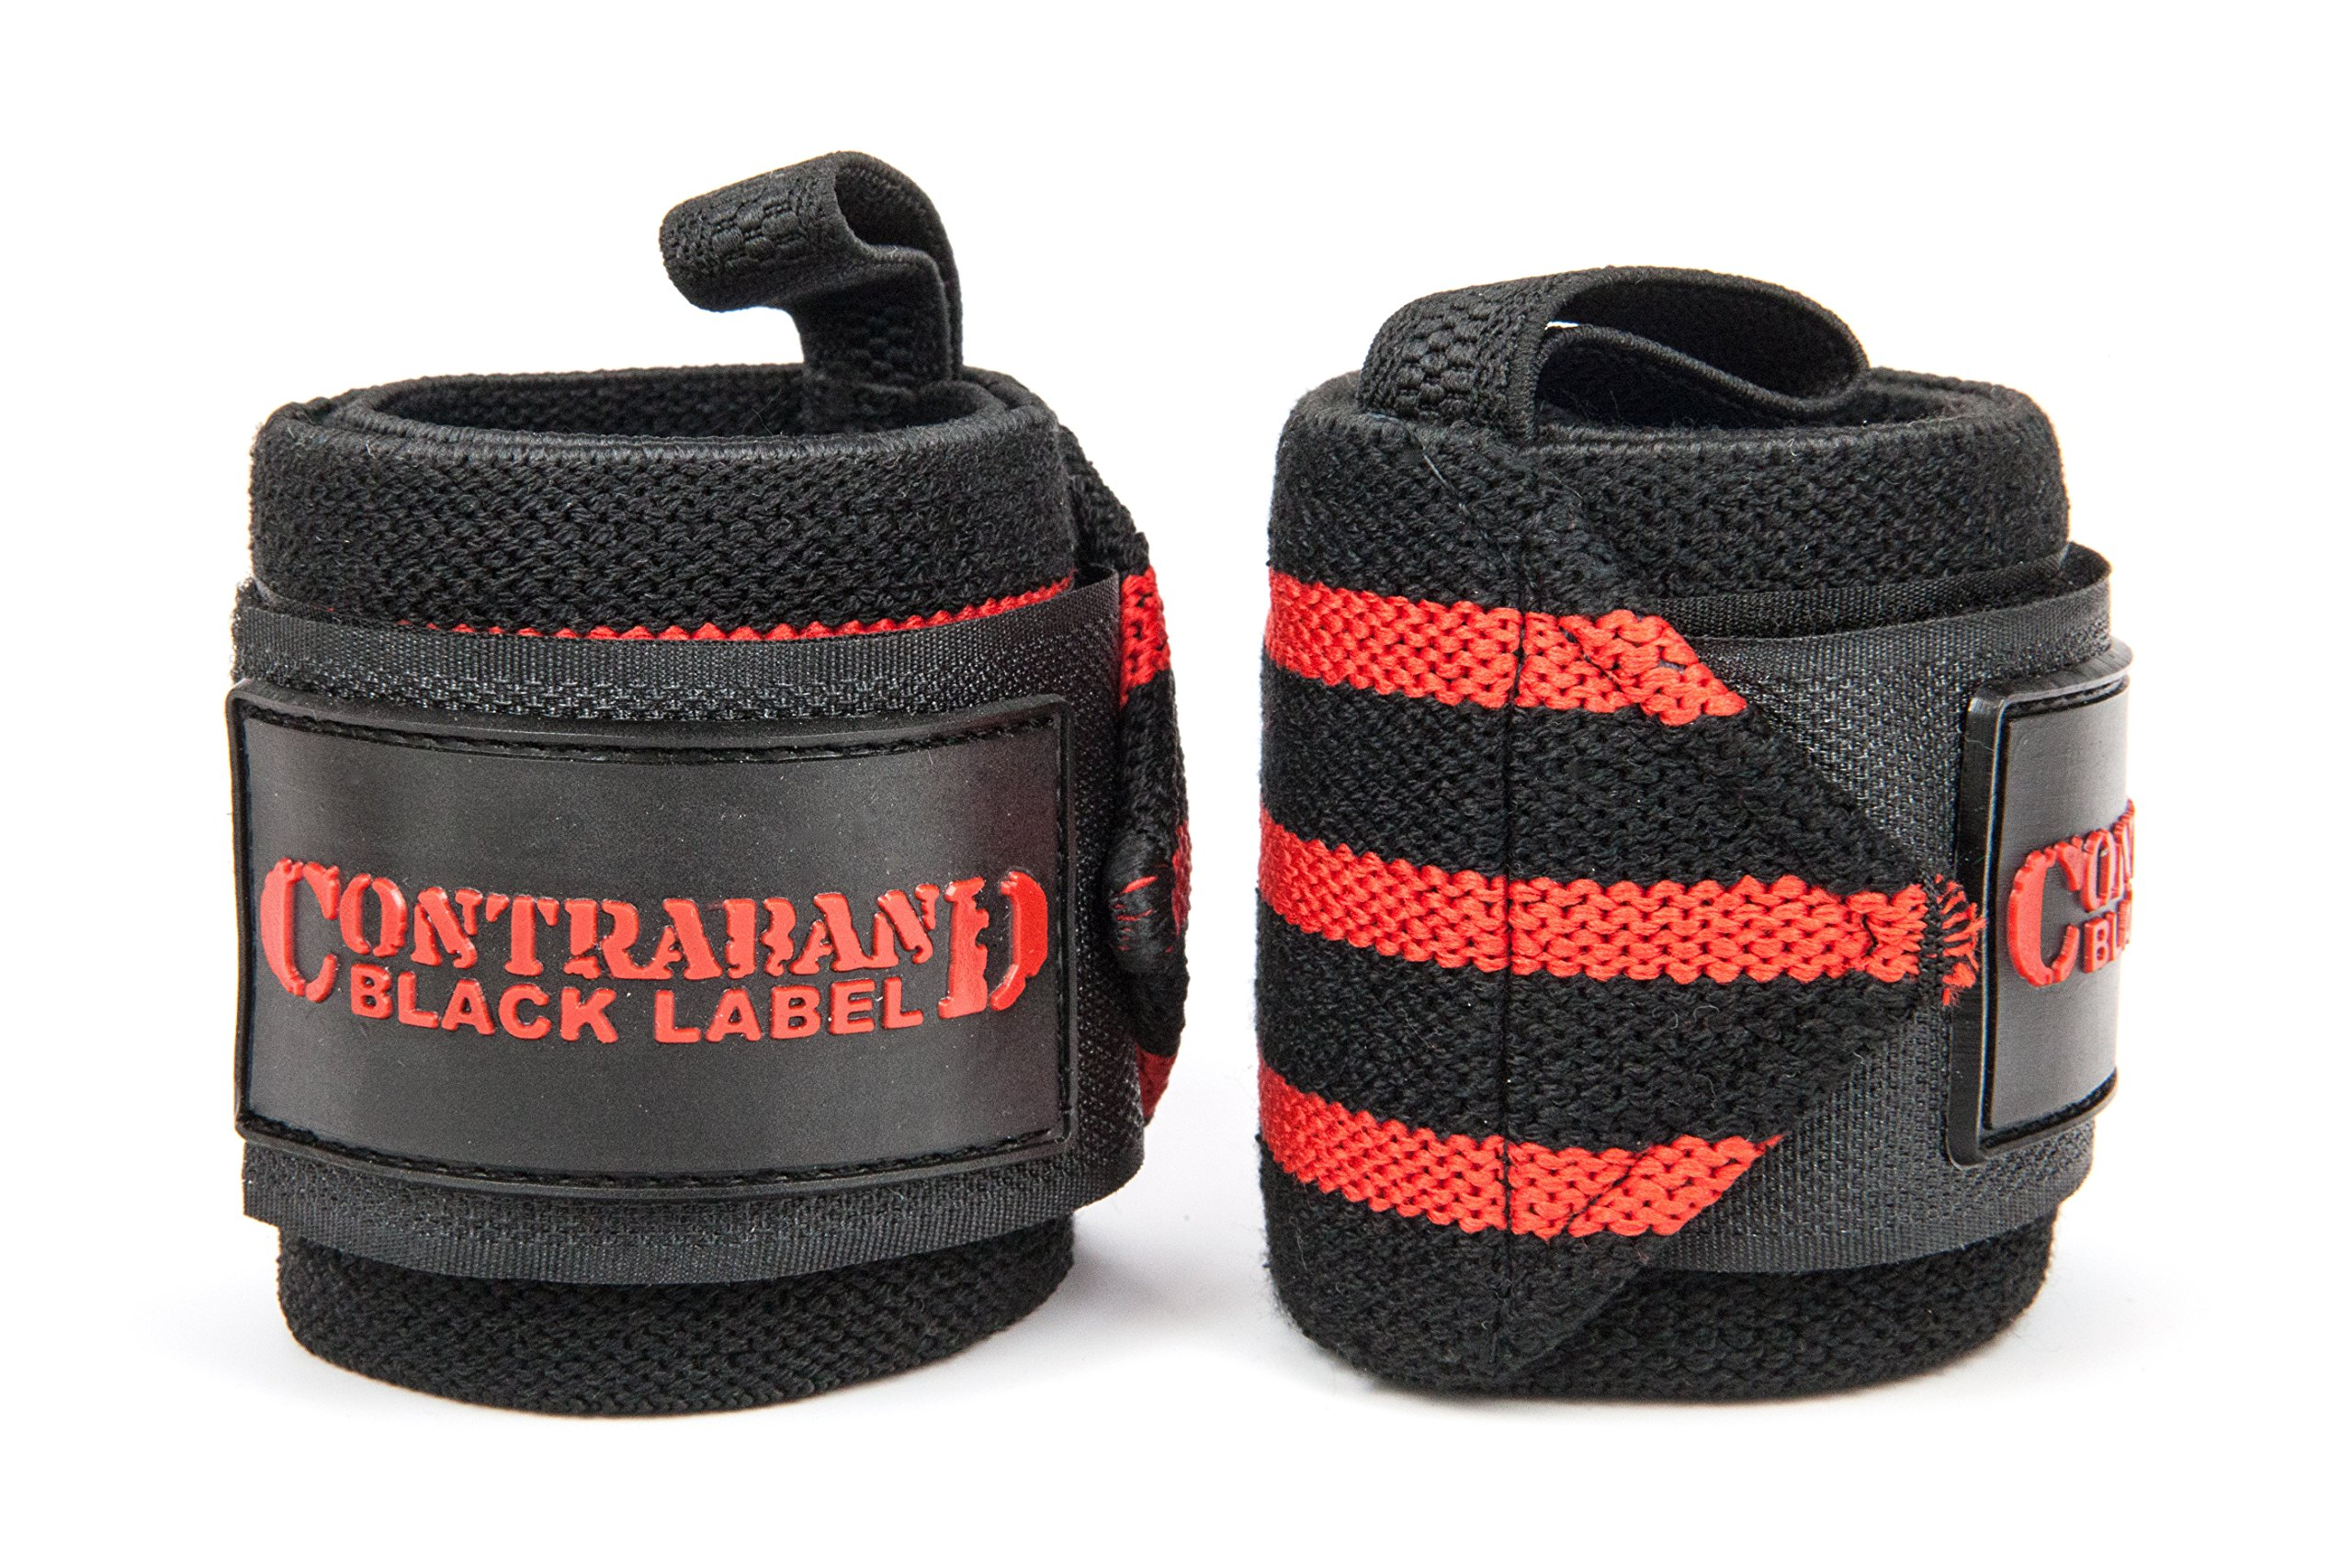 Contraband Black Label 1001 Weight Lifting Wrist Wraps w/Thumb Loops (Pair) - Competition Grade Wrist Support USPA Approved for Powerlifting, Bodybuilding, Strongman (18in, Medium (RED))